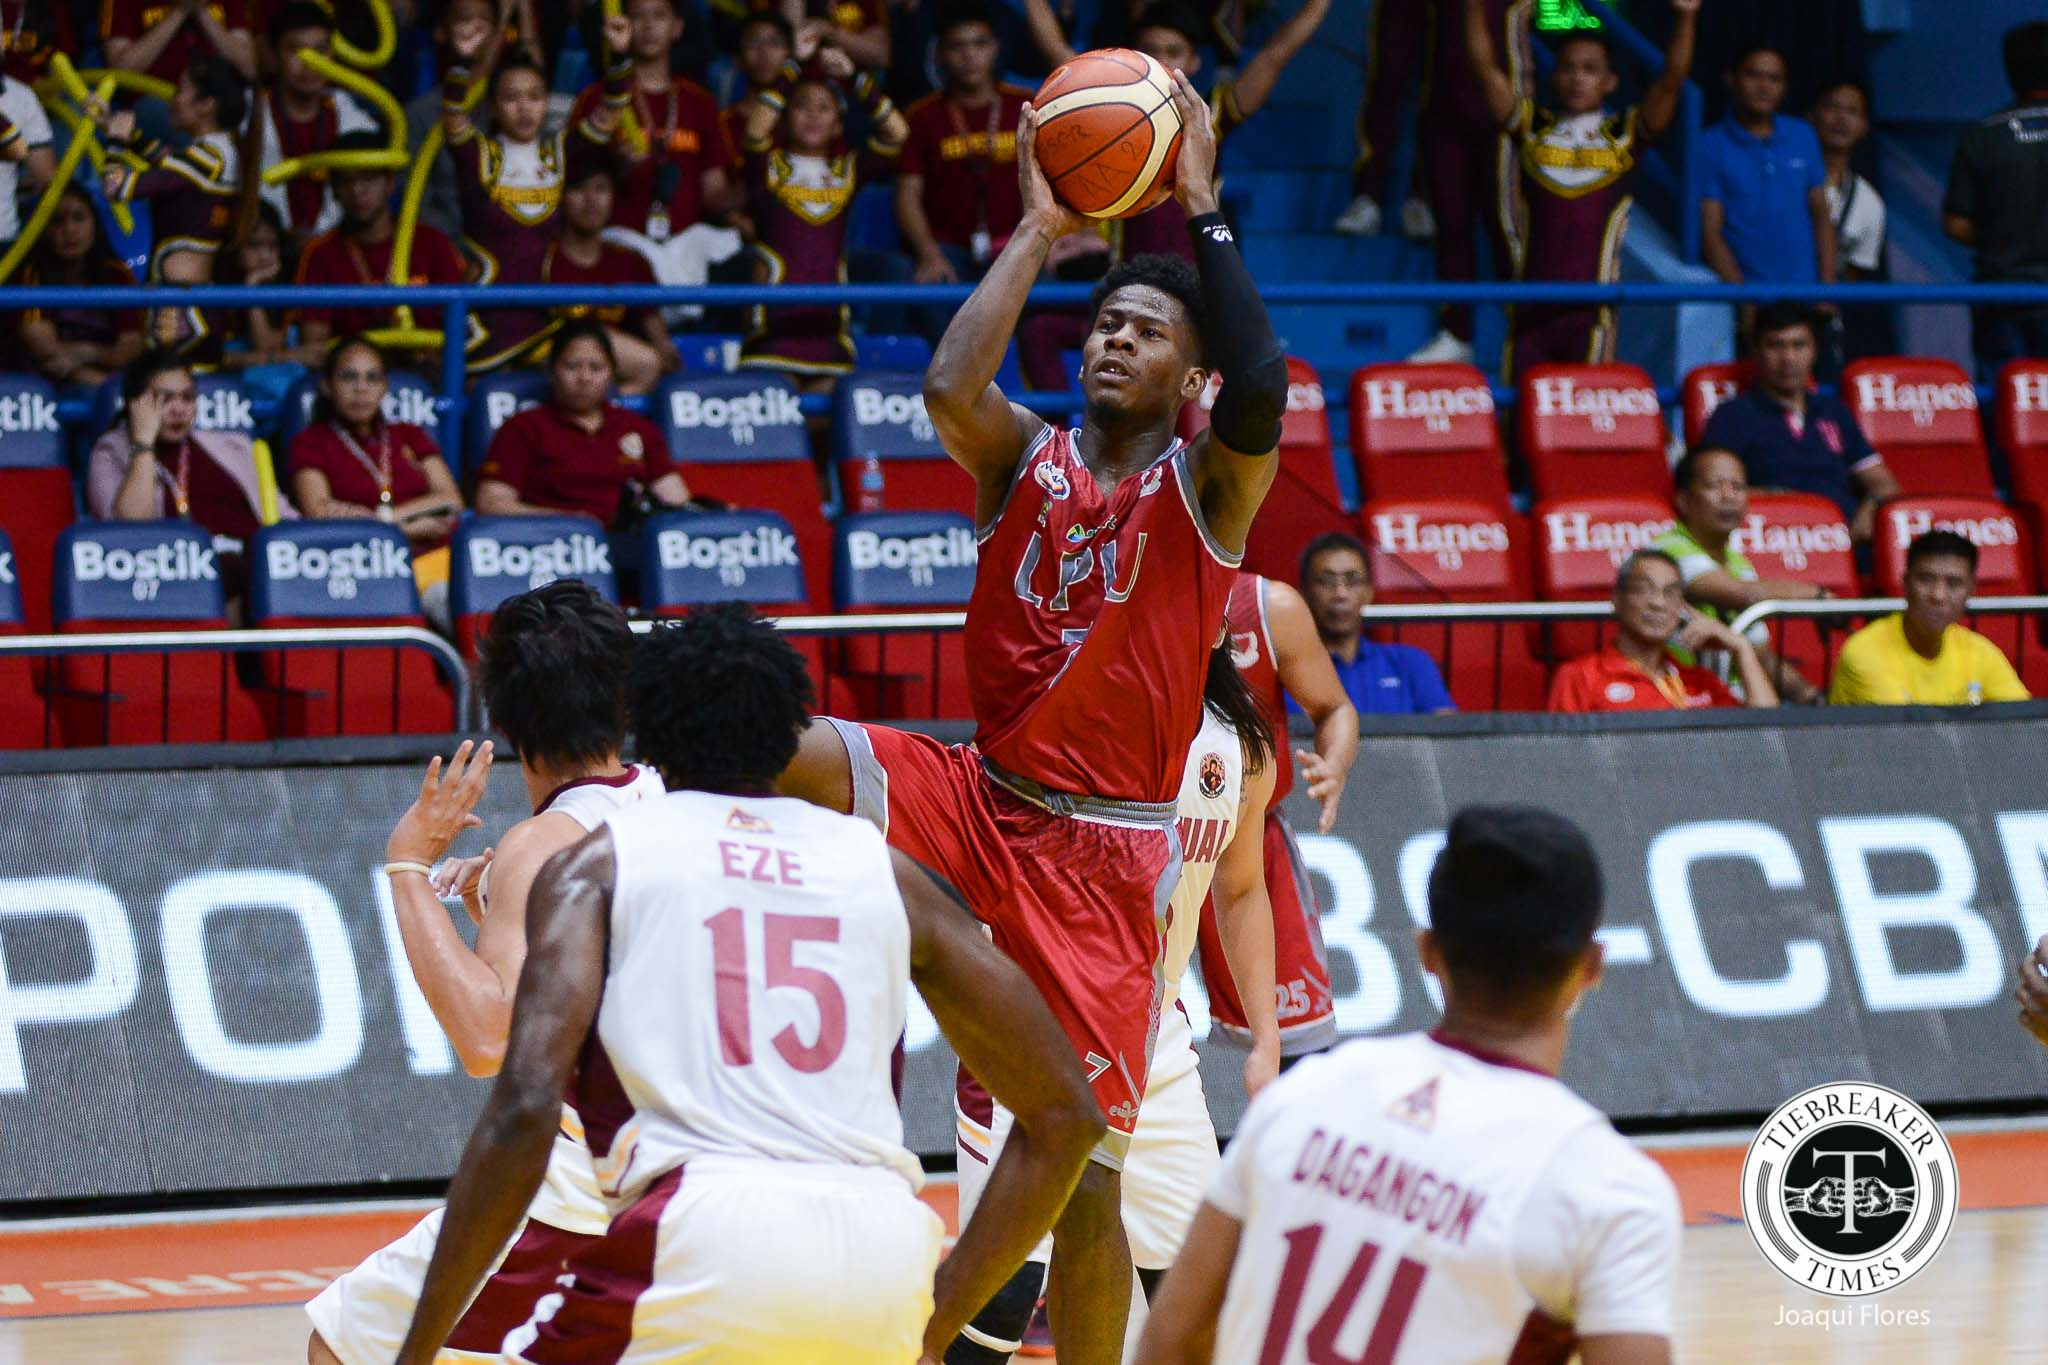 Philippine Sports News - Tiebreaker Times Lyceum turns it up in an instant against Perpetual to go to 6-0 Basketball LPU NCAA News UPHSD  Prince Eze Perpetual Seniors Basketball NCAA Season 93 Seniors Basketball NCAA Season 93 MJ Ayaay Lyceum Seniors Basketball Jimwell Gican Jeff Perlas CJ Perez